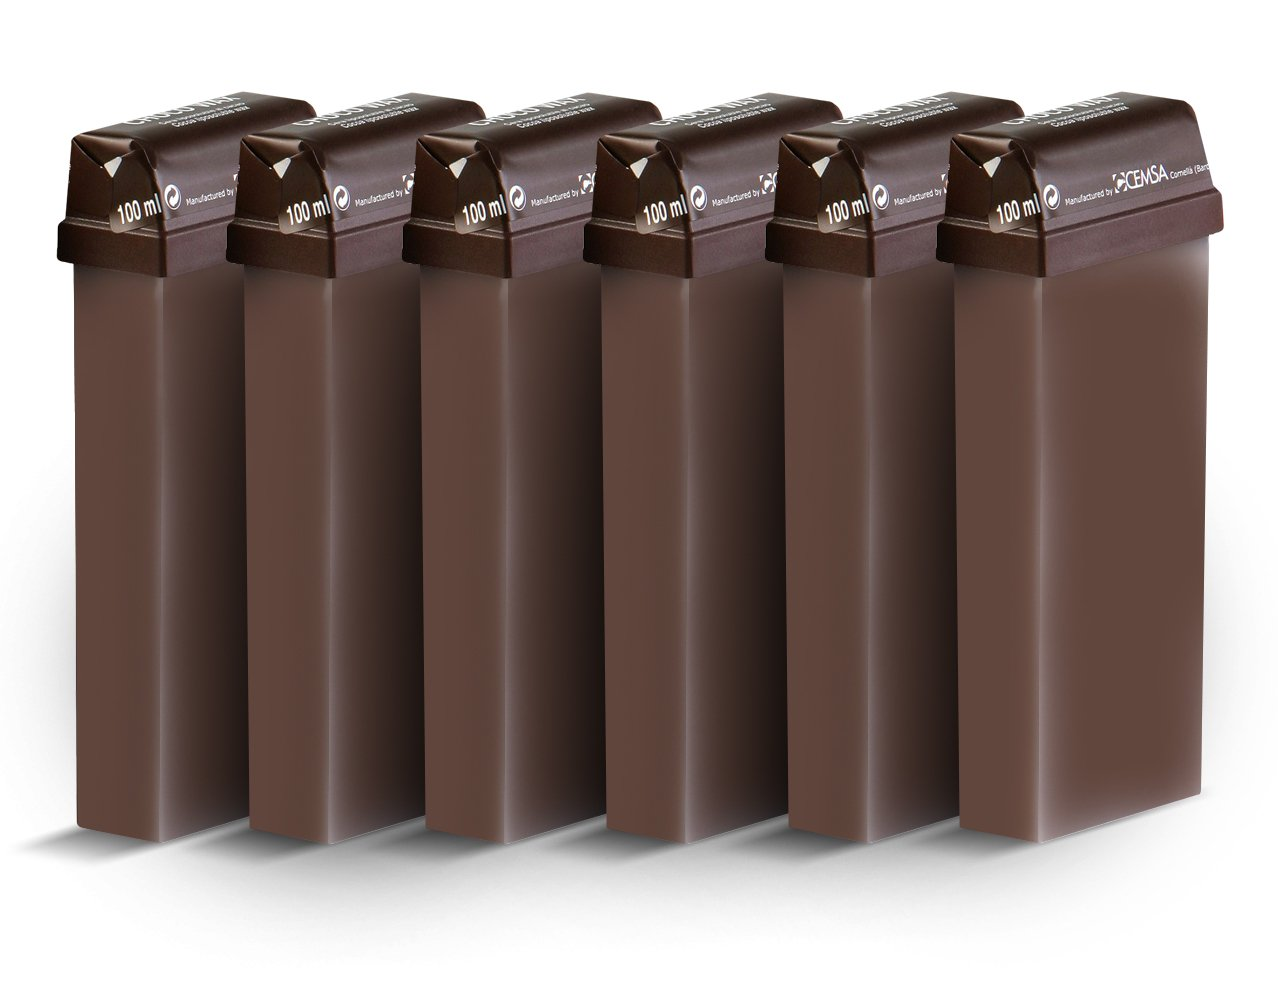 Beauty Image Chocolate Warm Wax Roll On - Pack of 6 BeautyCentre 100003x6